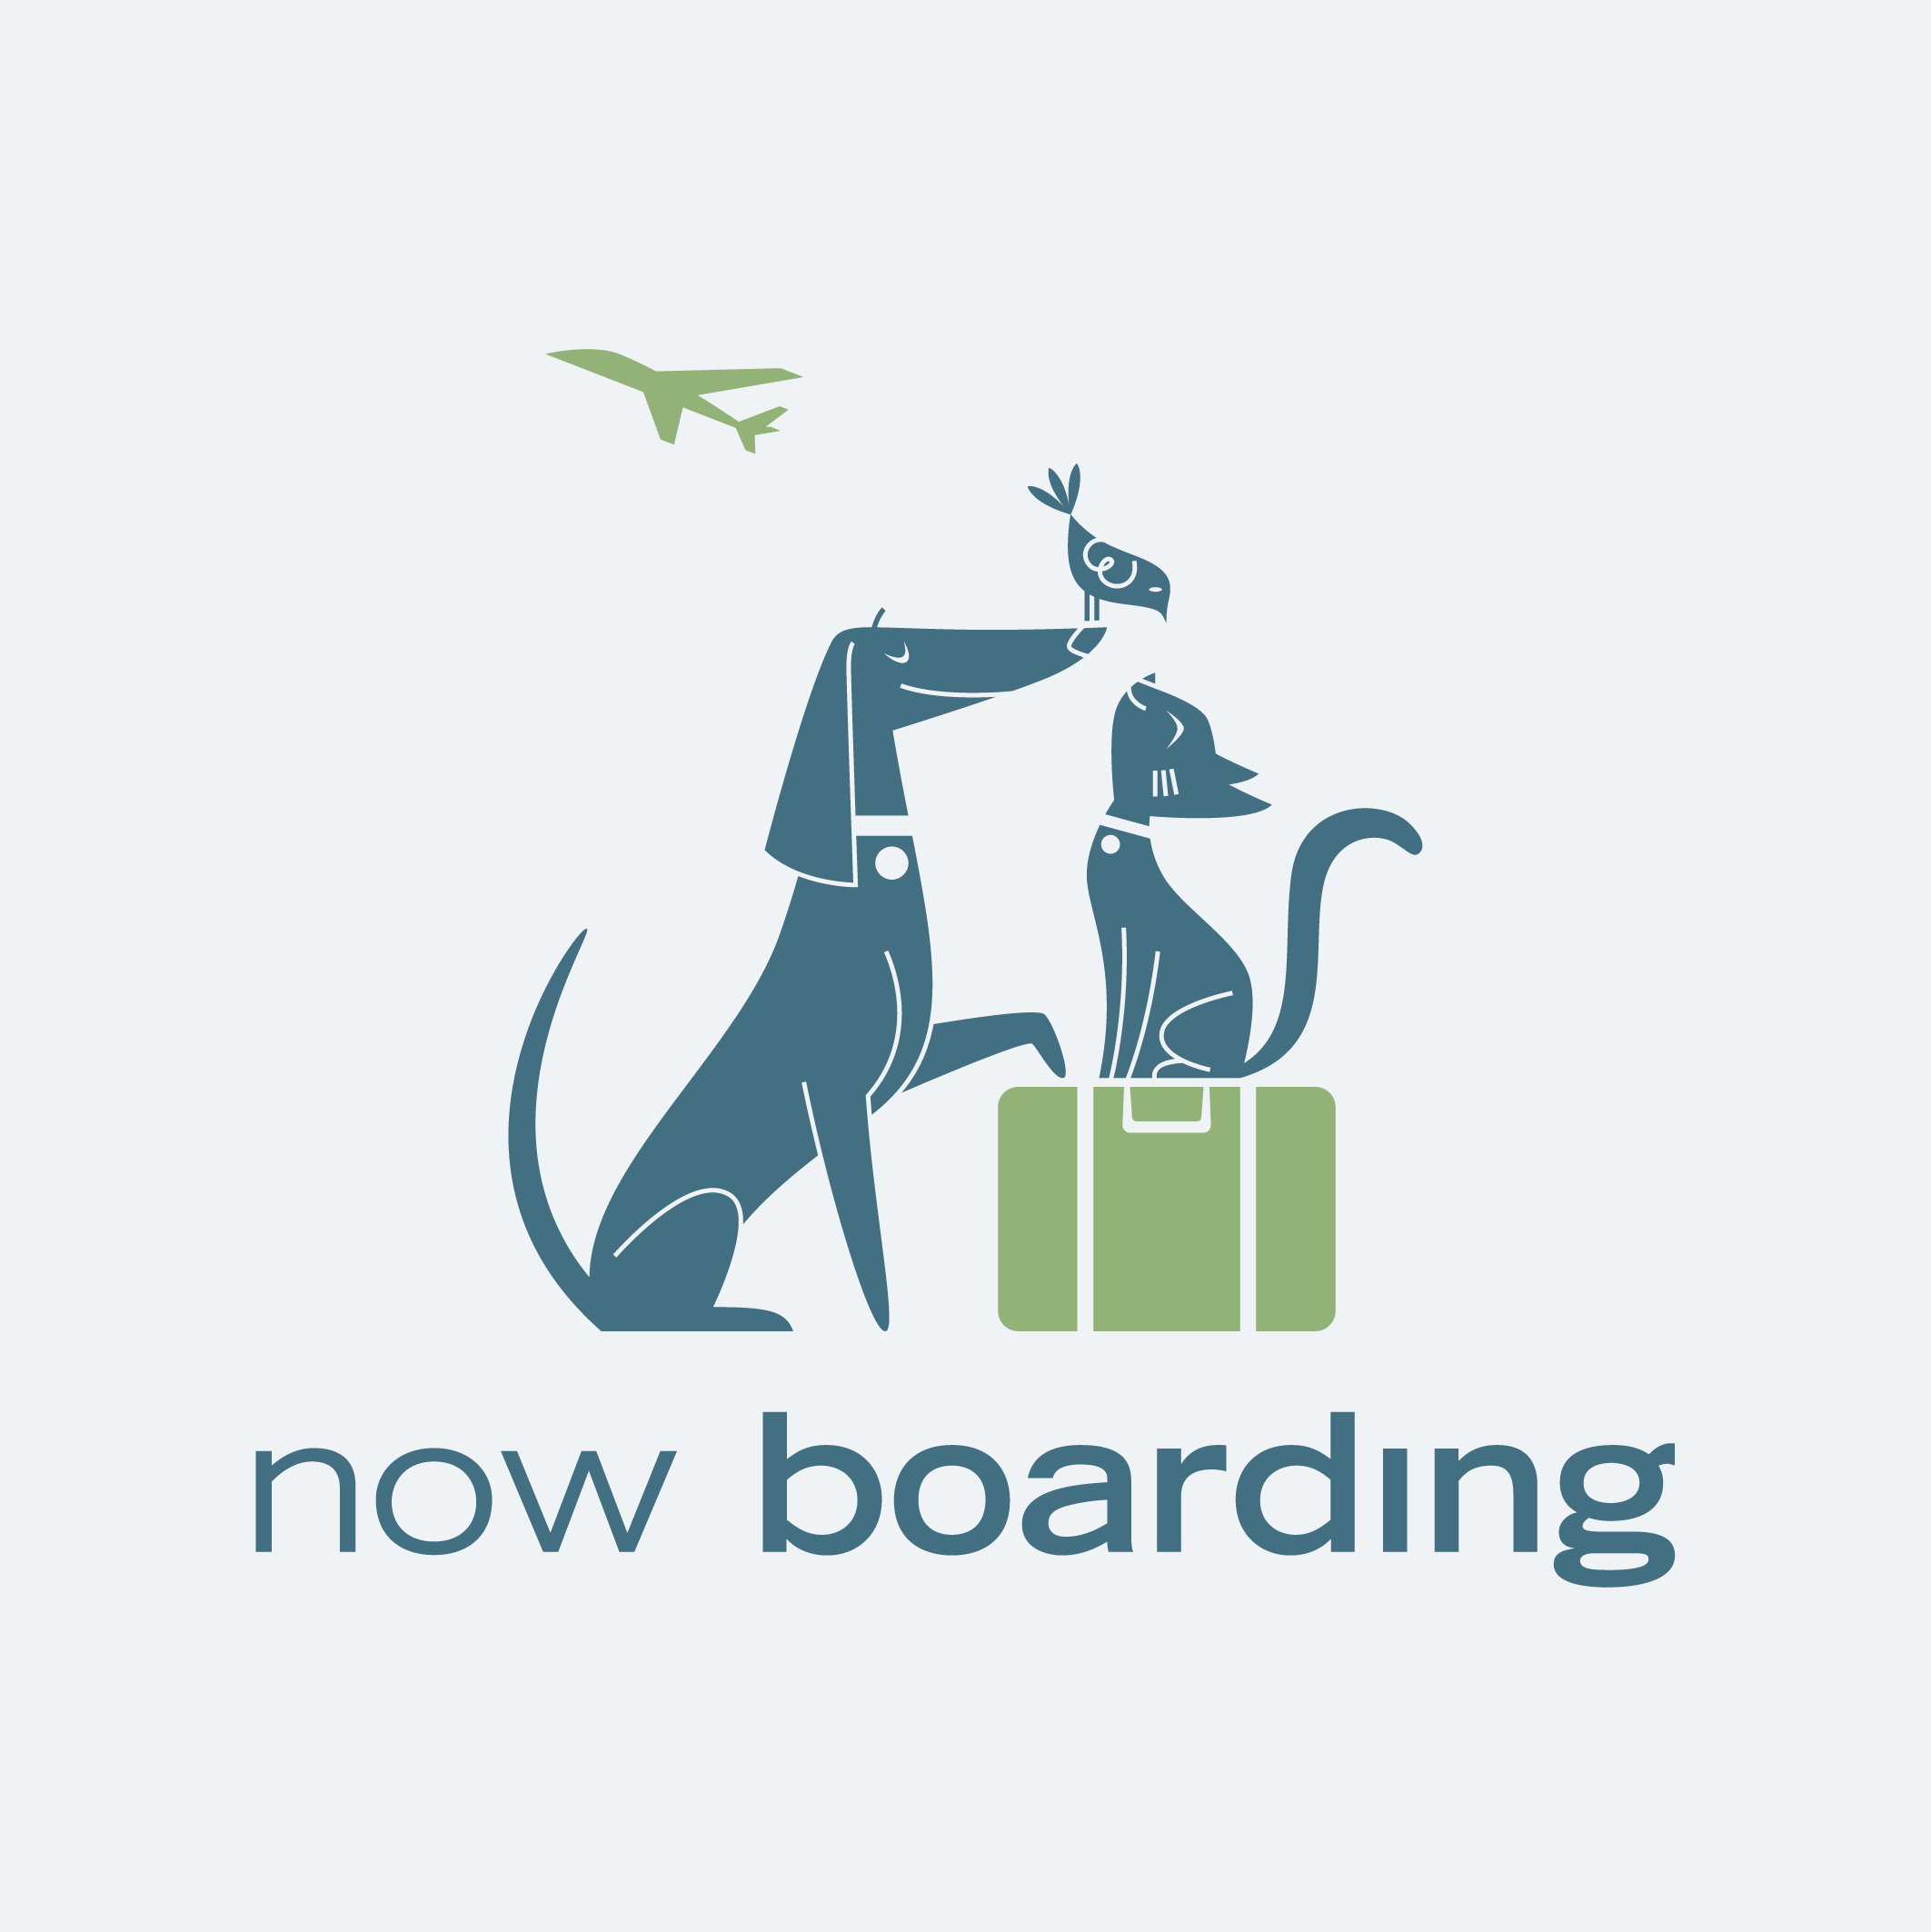 Congrats to Now Boarding